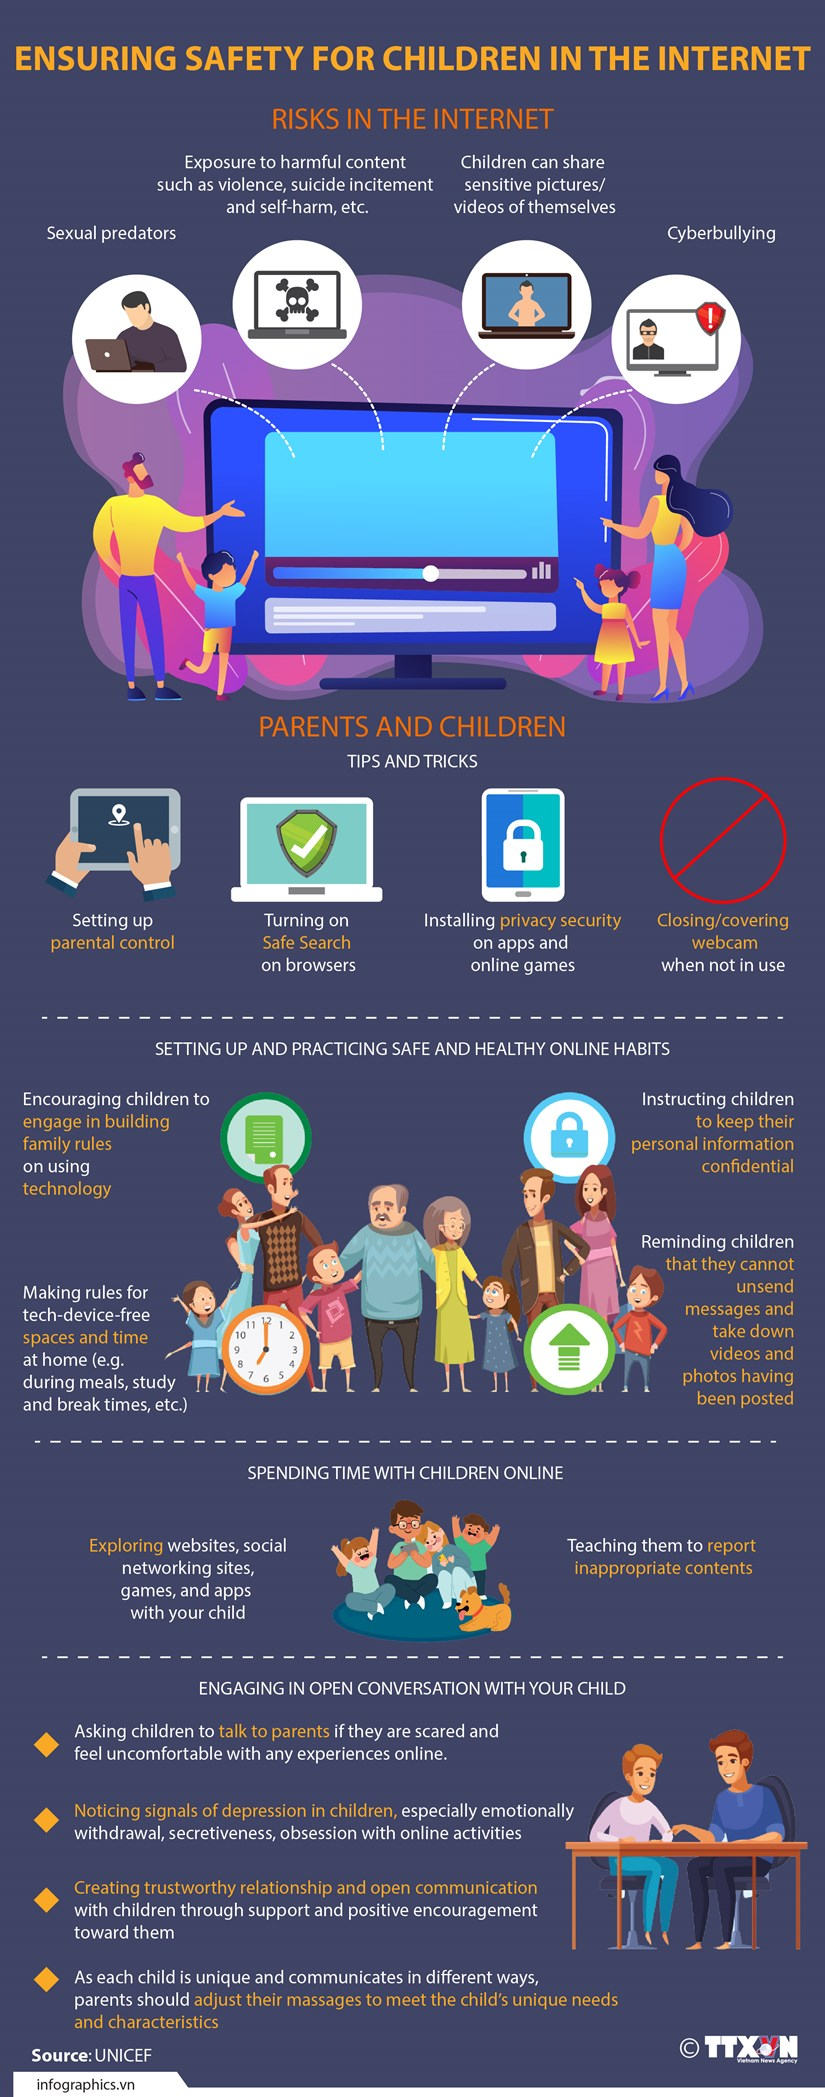 Ensuring safety for children in the Internet hinh anh 1